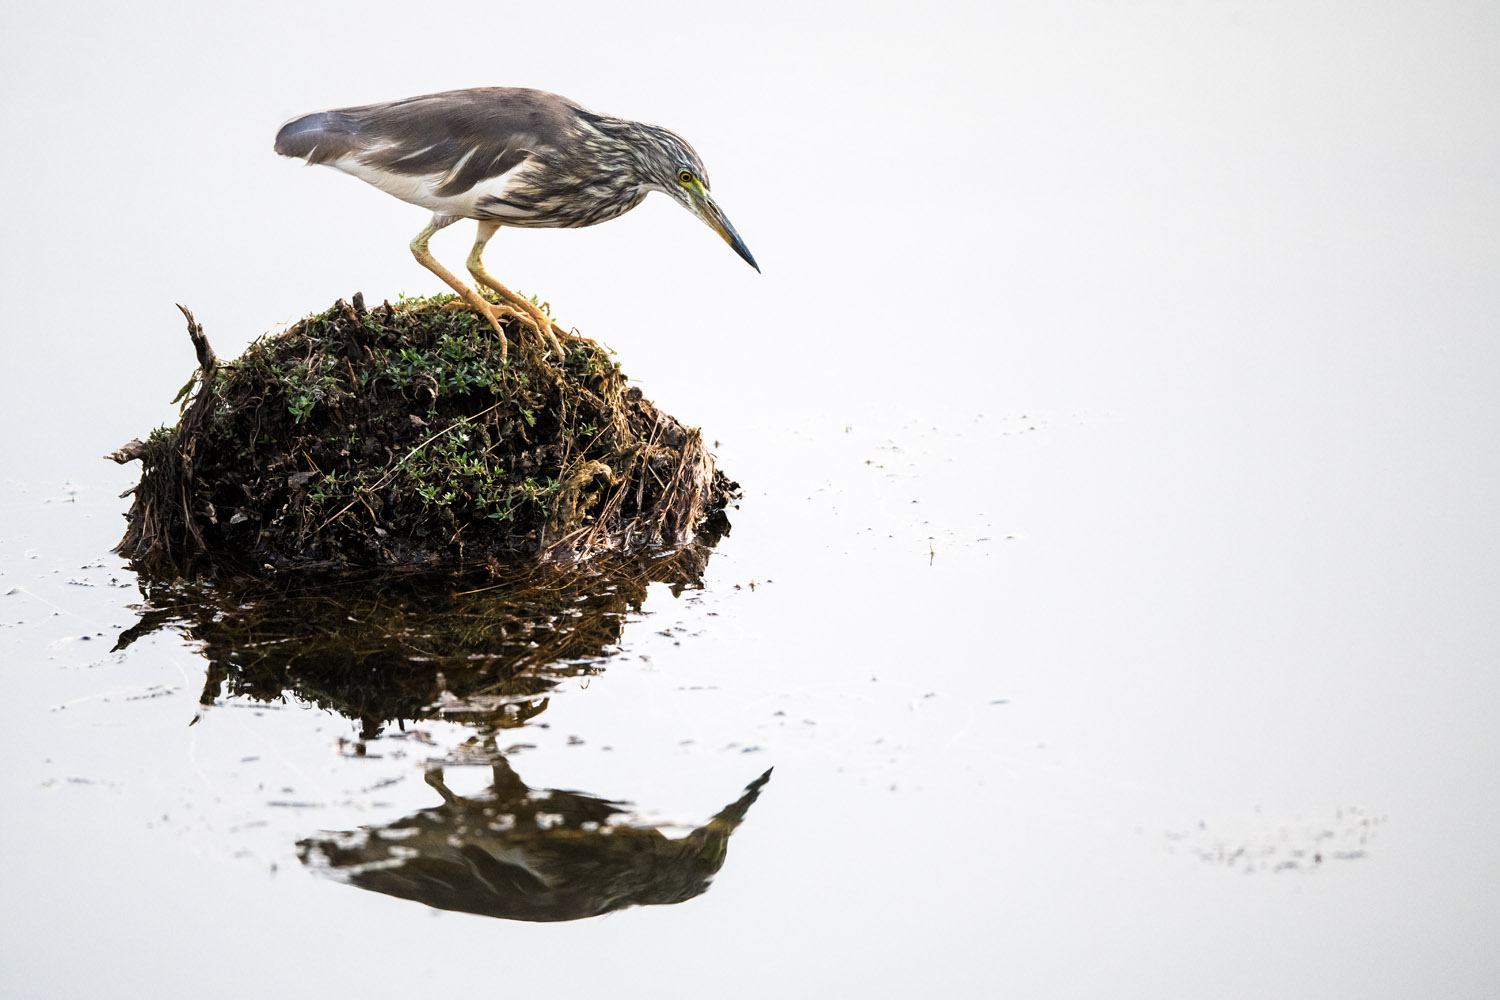 Indian pond heron, Ranthambhore National Park, Rajasthan, India